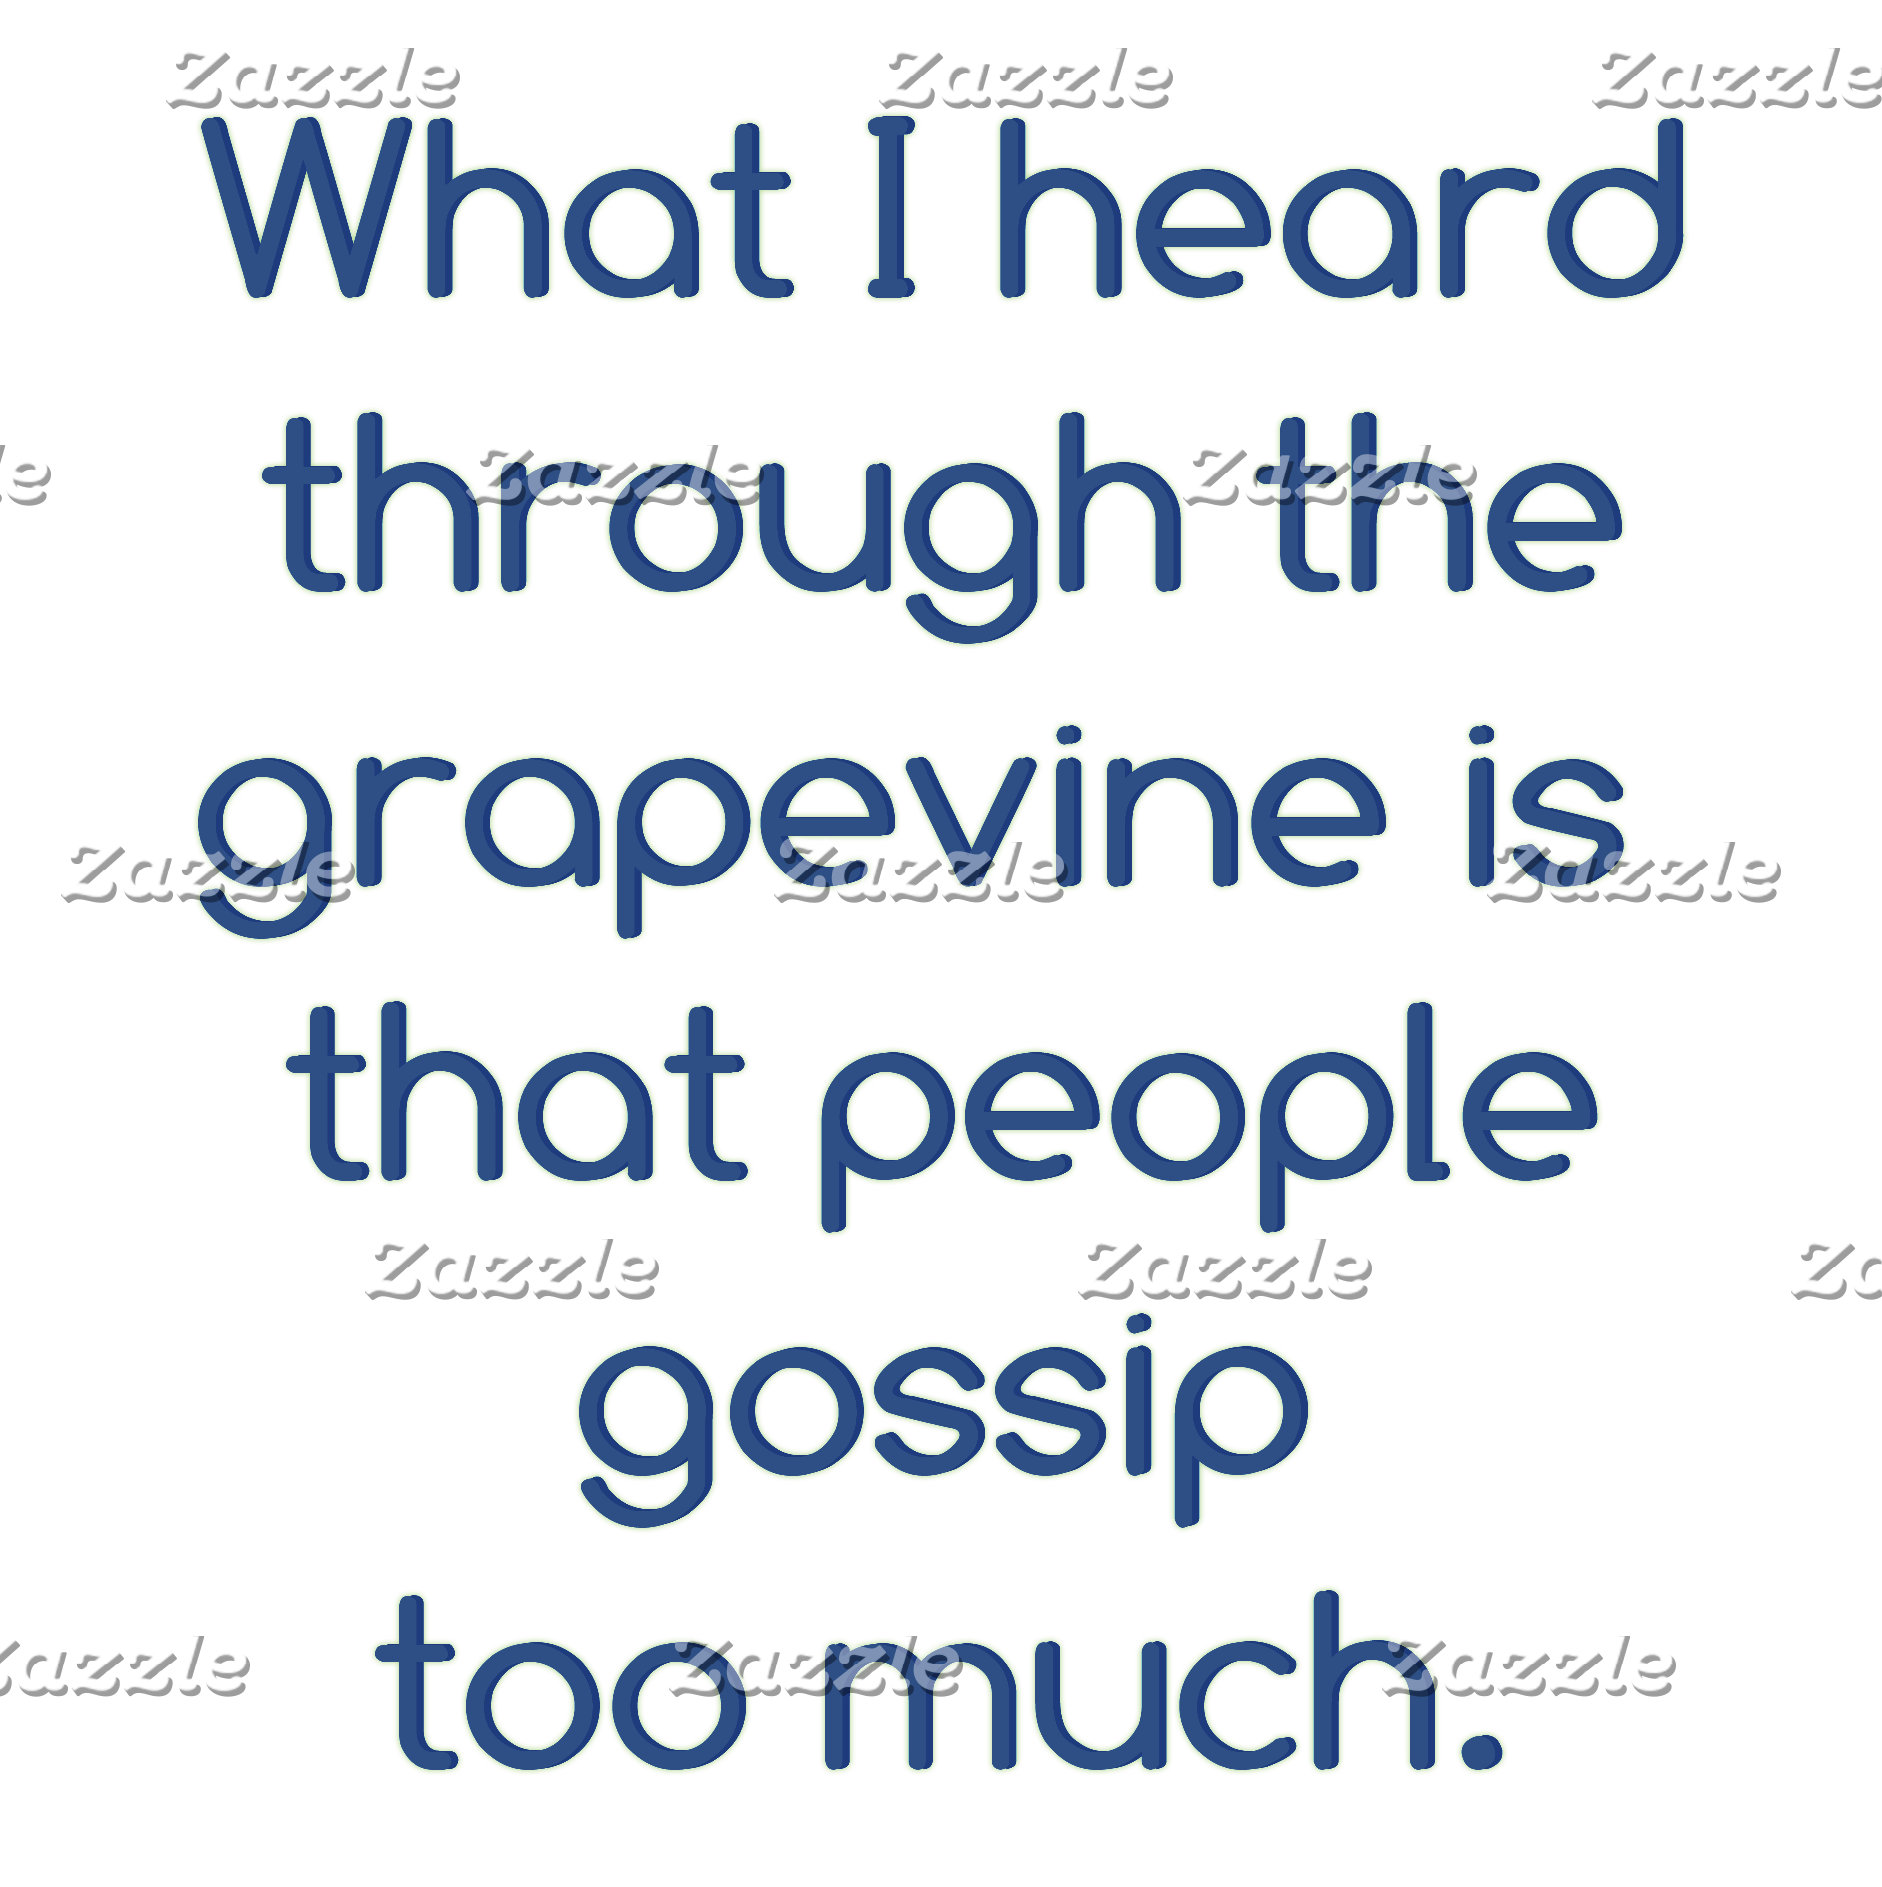 People Gossip Too Much!